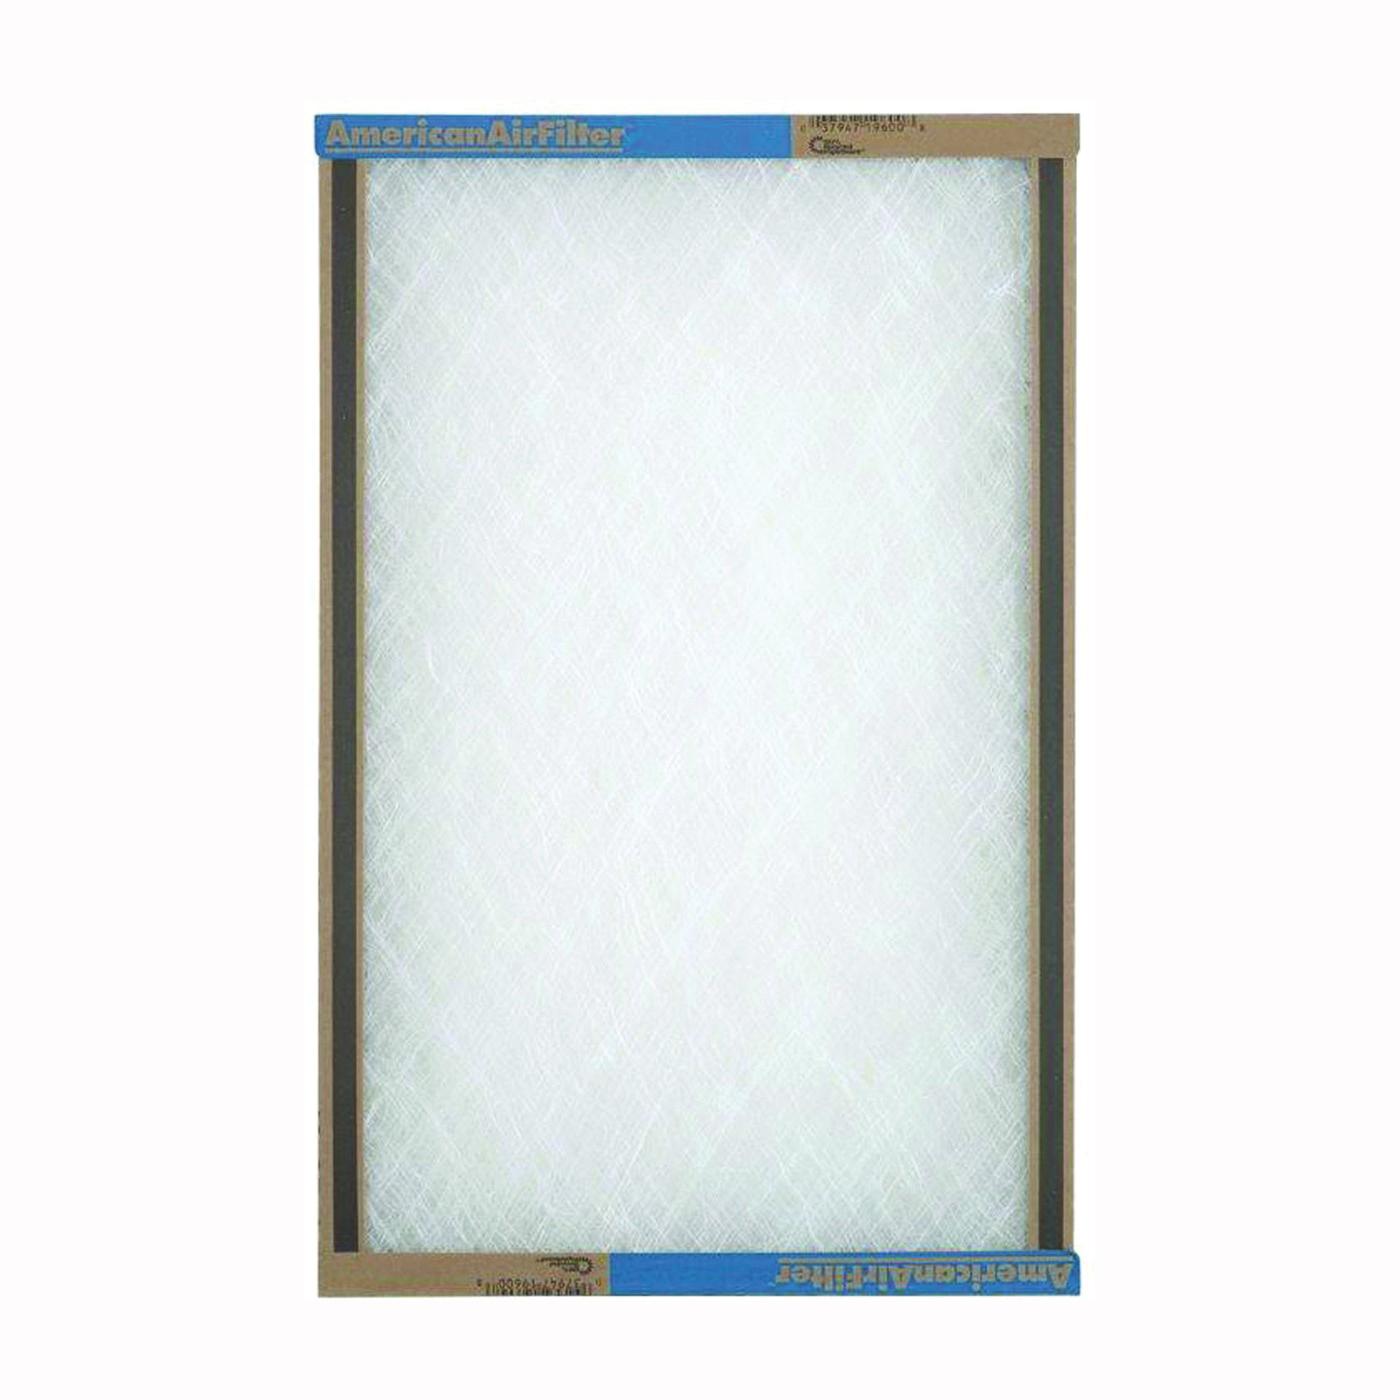 Picture of AAF 115201 Panel Filter, 20 in L, 15 in W, Chipboard Frame